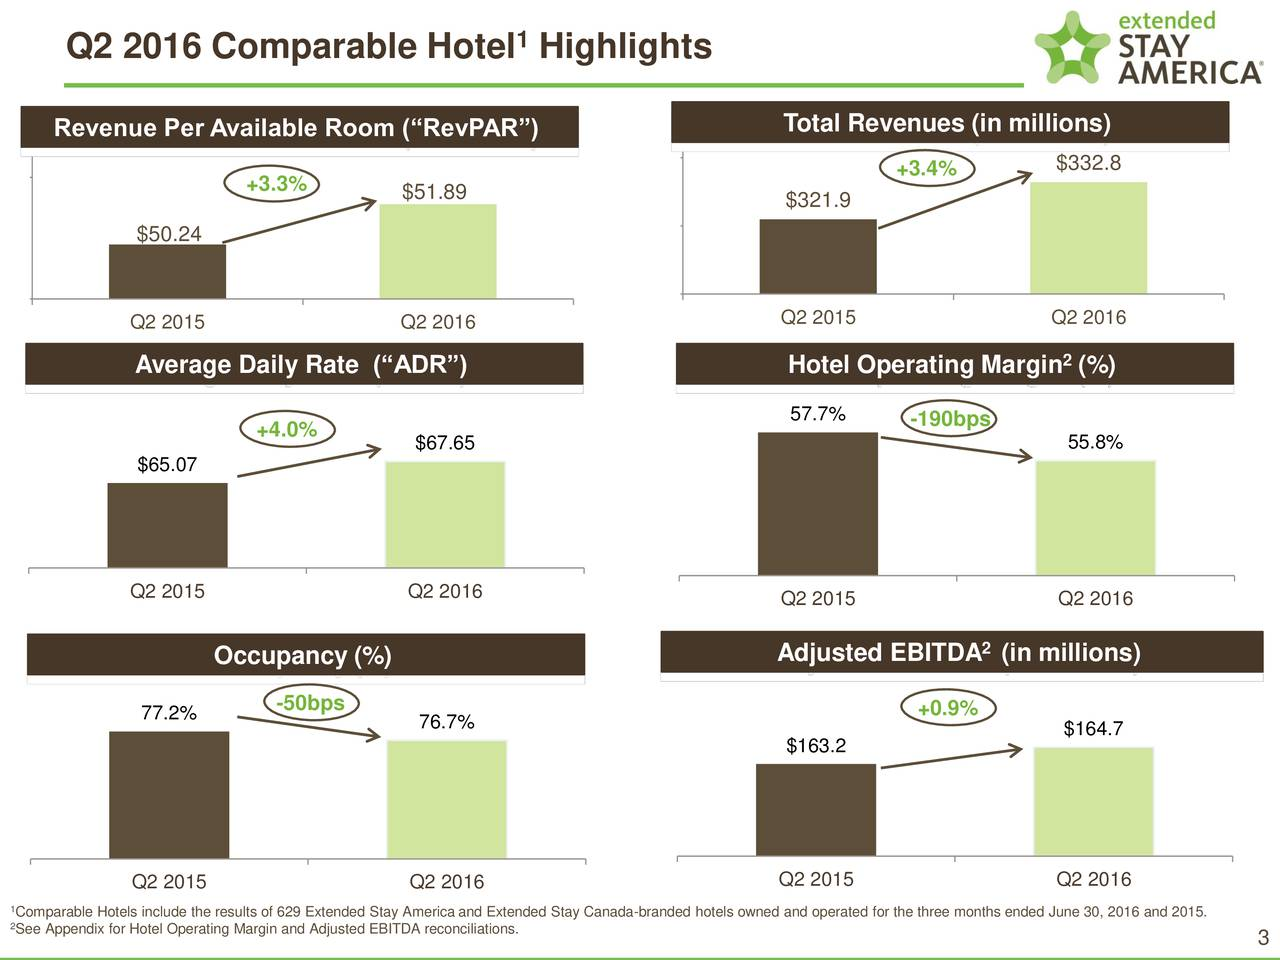 Q2 2016 Comparable Hotel Highlights Total Revenues (in millions) Revenue Per Available Room (RevPAR) $332.8 +3.3% +3.4% $51.89 $321.9 $50.24 Q2 2015 Q2 2016 Q2 2015 Q2 2016 Average Daily Rate (ADR) Hotel Operating Margin (%)2 +4.0% 57.7% -190bps $67.65 55.8% $65.07 Q2 2015 Q2 2016 Q2 2015 Q2 2016 Occupancy (%) Adjusted EBITDA (in millions) 77.2% -50bps +0.9% 76.7% $164.7 $163.2 Q2 2015 Q2 2016 Q2 2015 Q2 2016 2omparable Hotels include the results of 629 Extended Stay America and Extended Stay Canada-branded hotels owned and operated for the three months ended June 30, 2016 and 2015. See Appendix for Hotel Operating Margin and Adjusted EBITDA reconciliations. 3